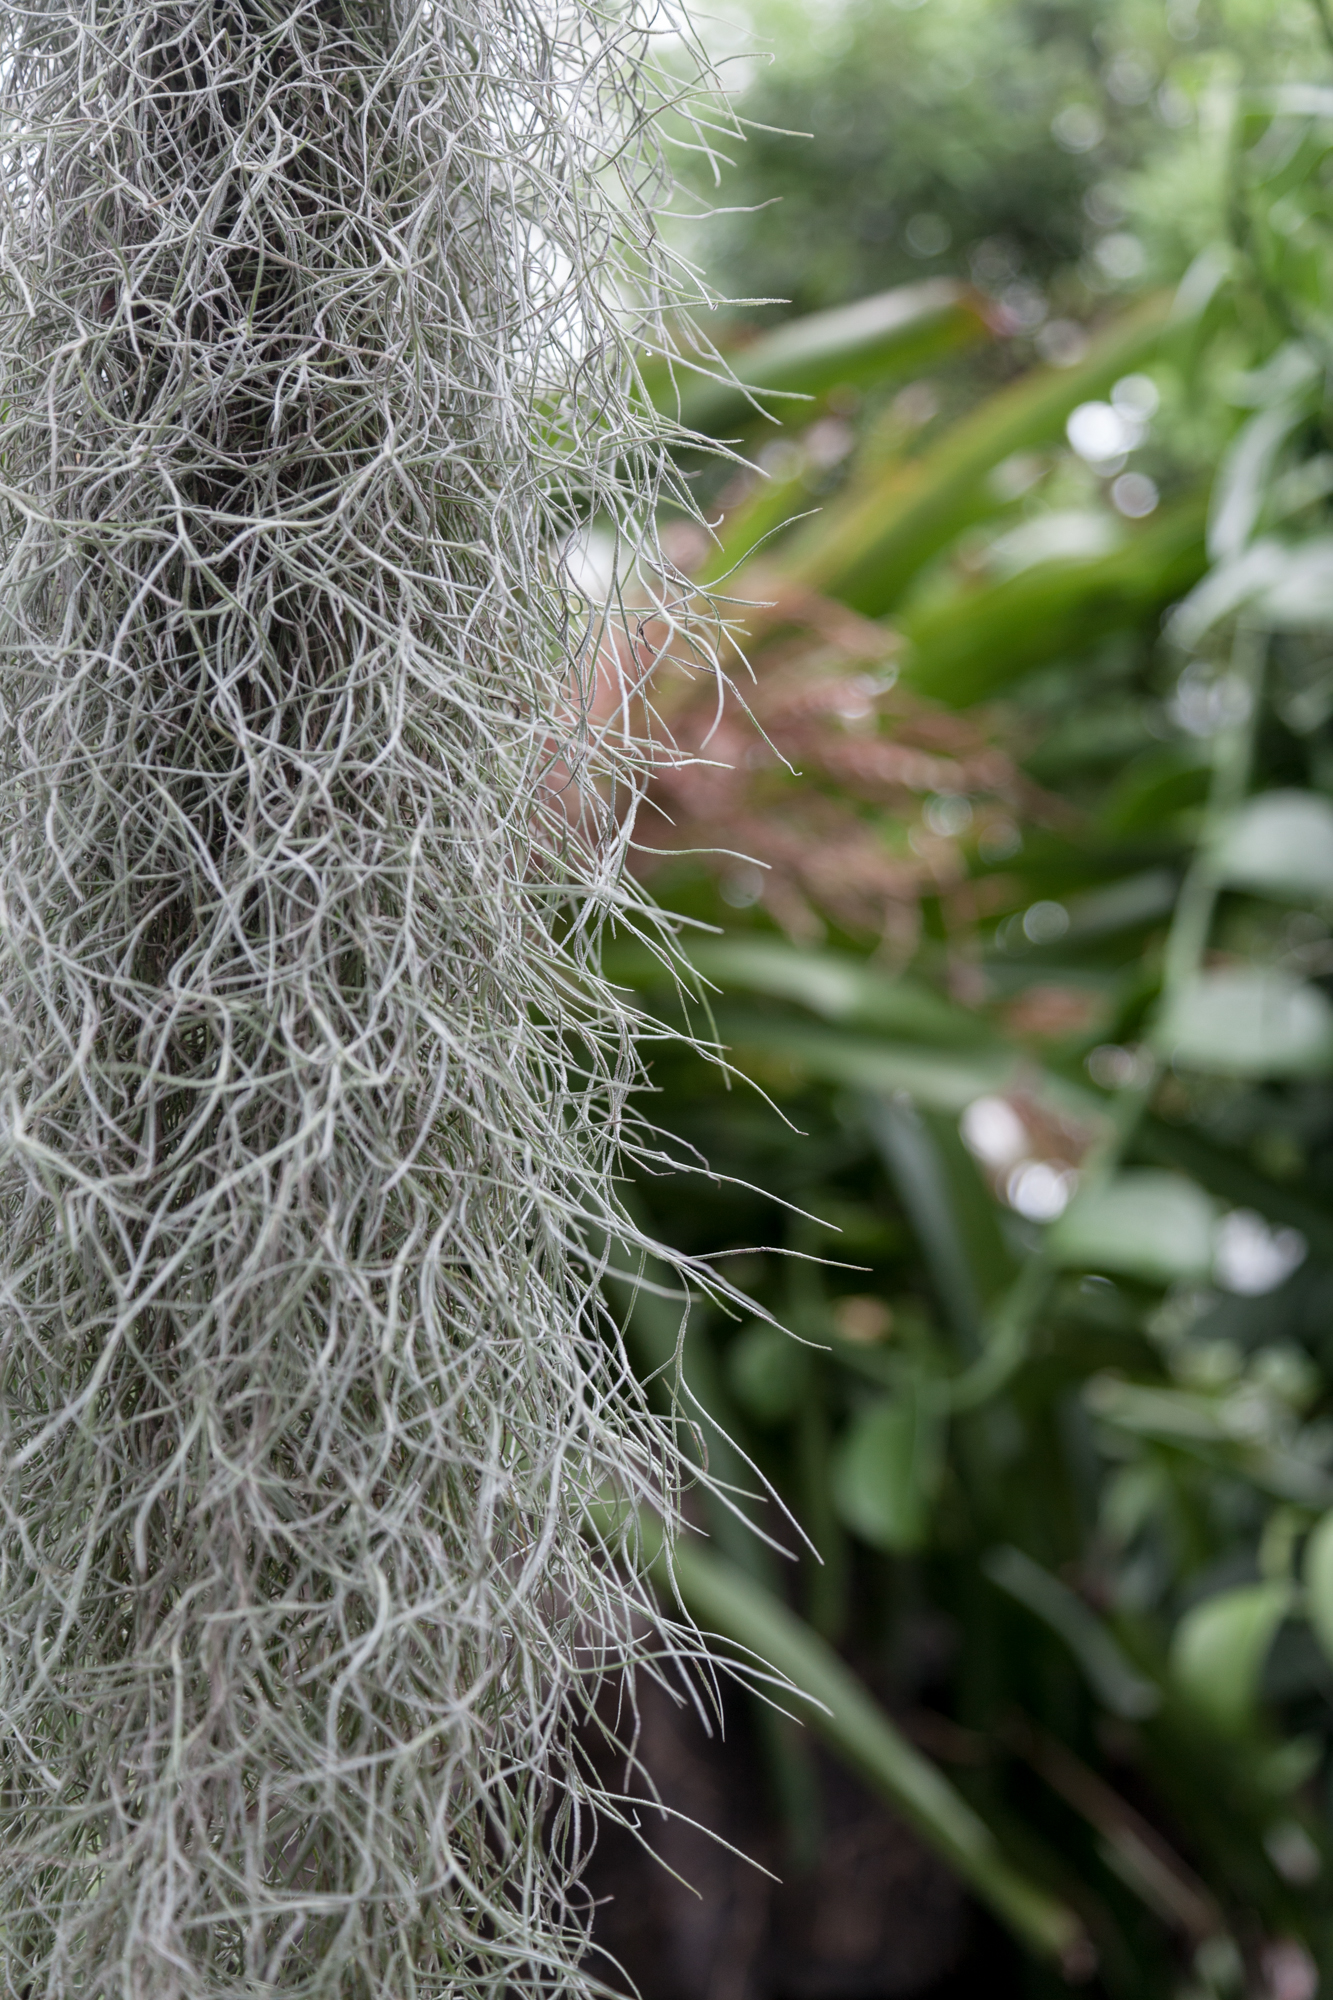 Tillandsia usneoides  or Spanish moss is a type of epiphytic plant commonly found throughout the southern U.S. and Central and South America.